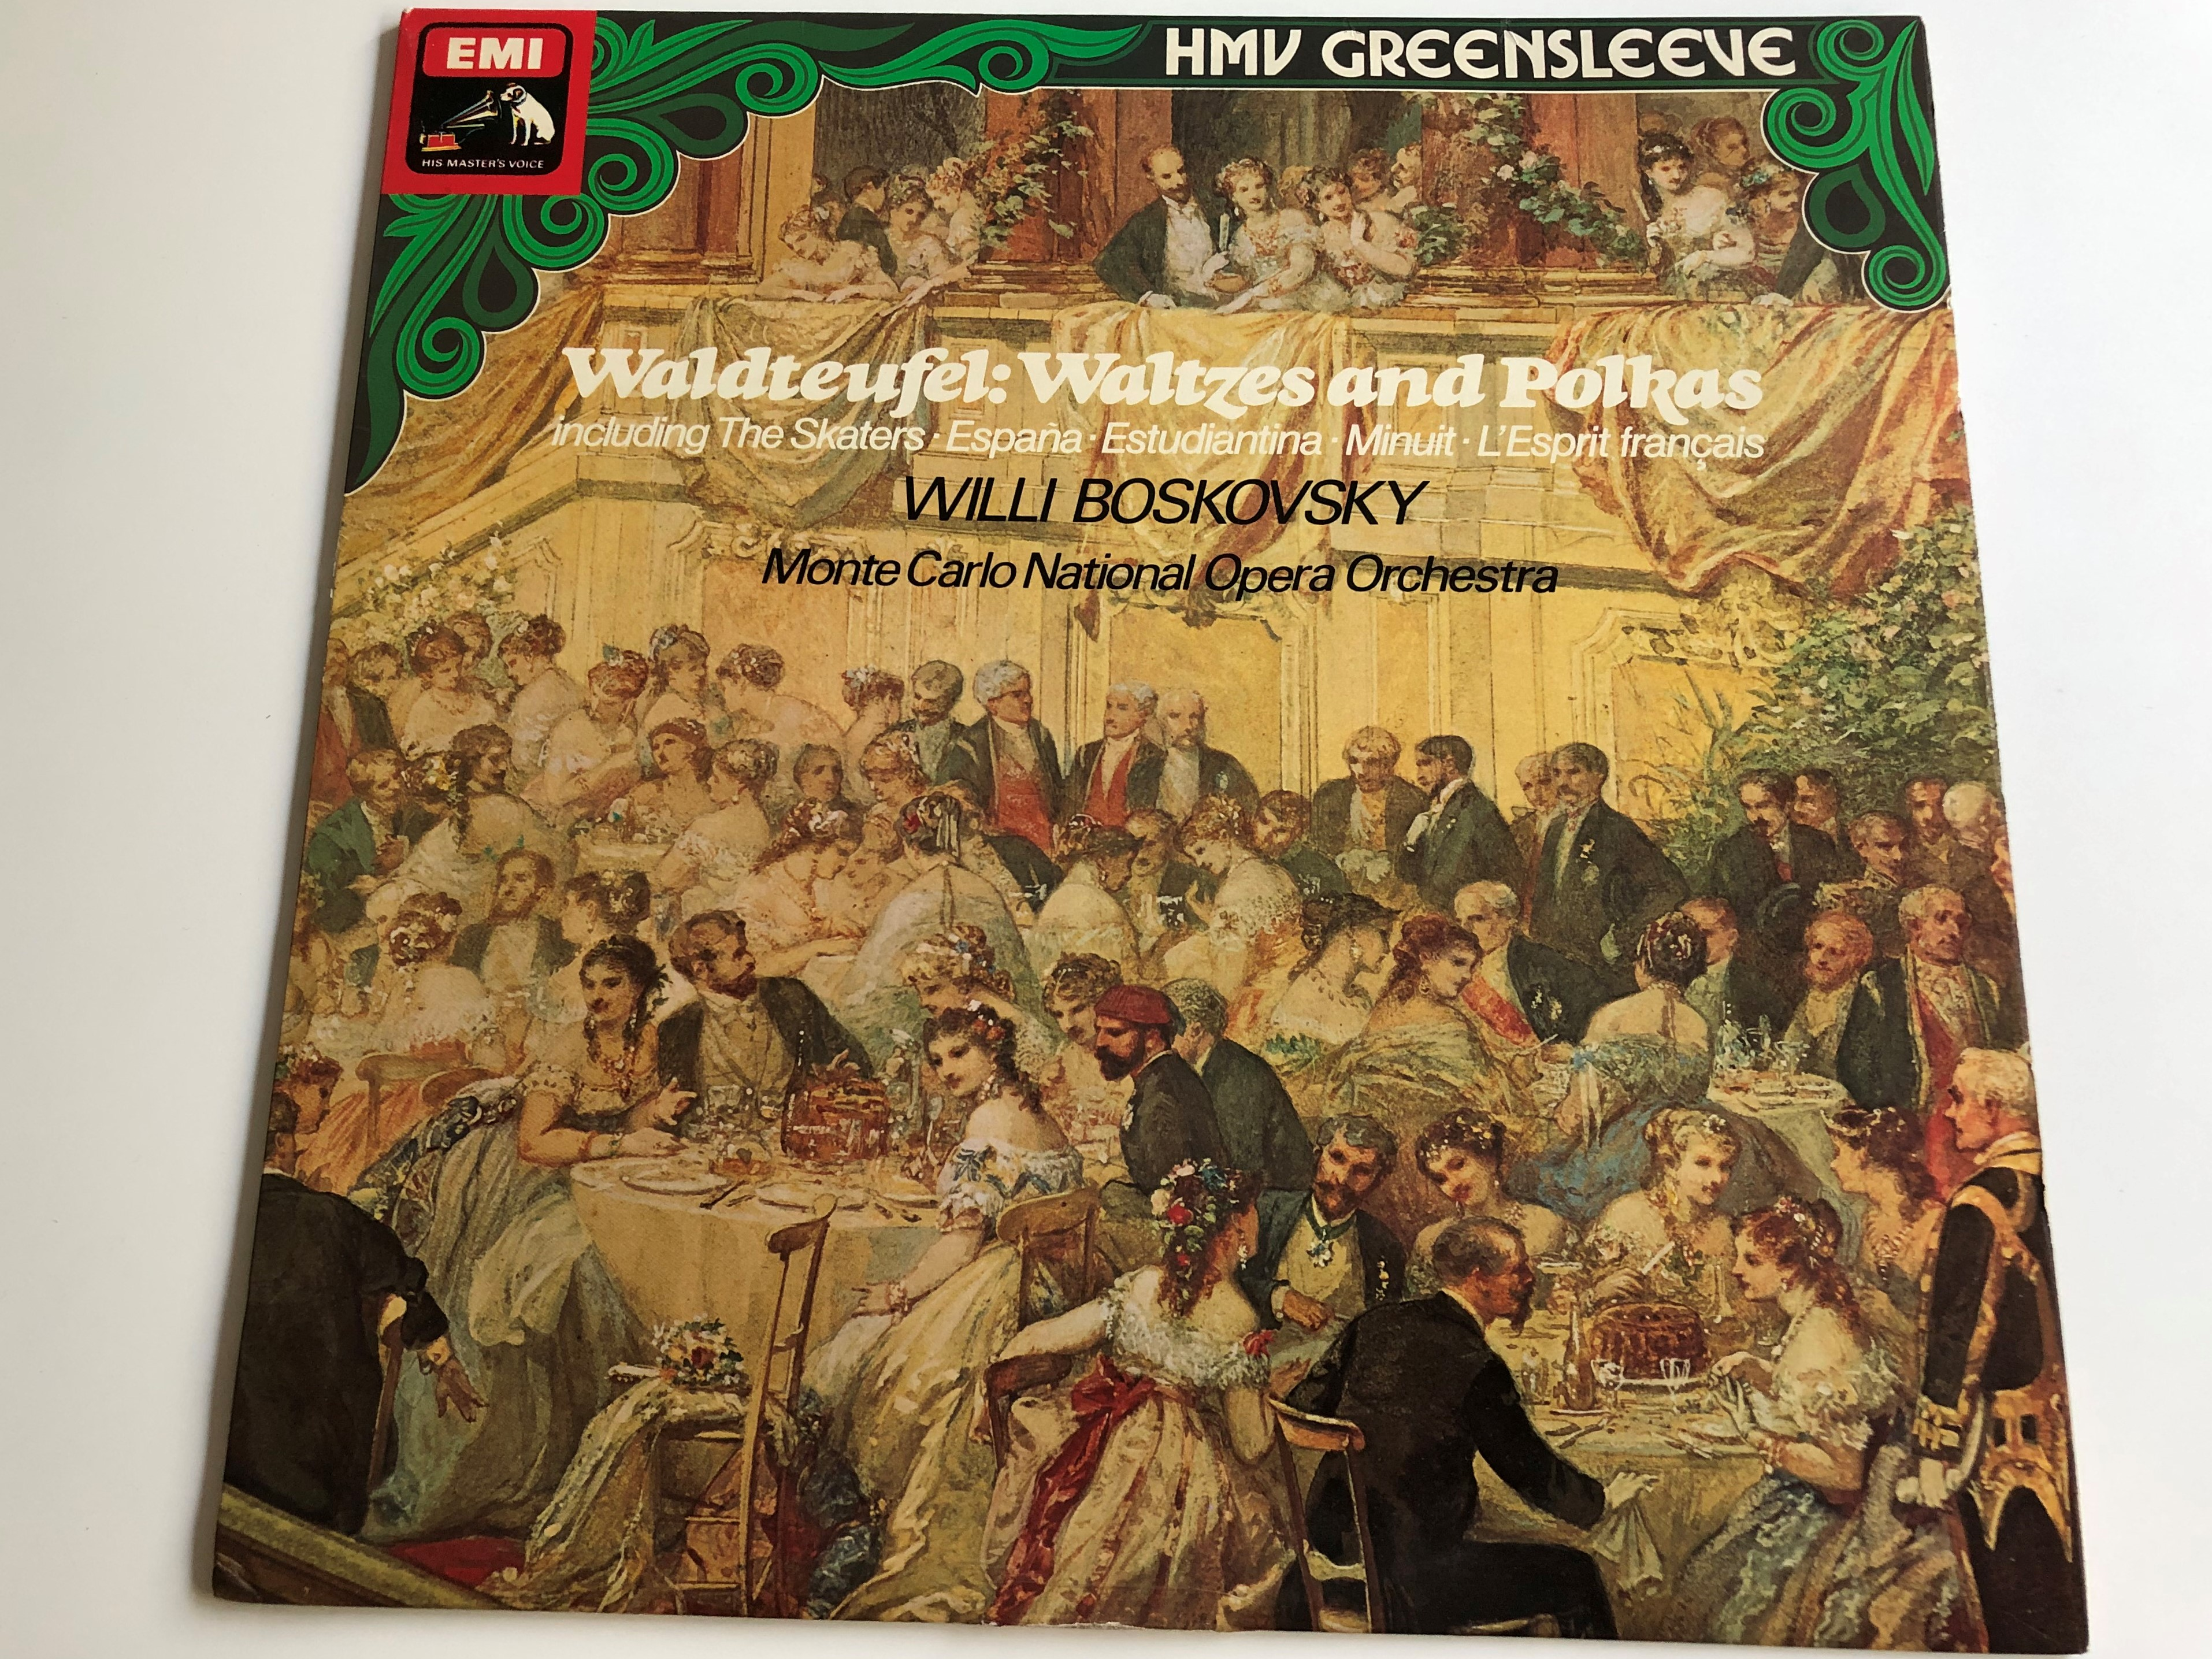 waldteufel-waltzes-and-polkas-including-the-skaters-espa-a-estudiantina-minuit-l-esprit-francais-willi-boskovsky-monte-carlo-national-opera-orchestra-emi-records-ltd.-lp-stereo-quadraphonic-1-.jpg